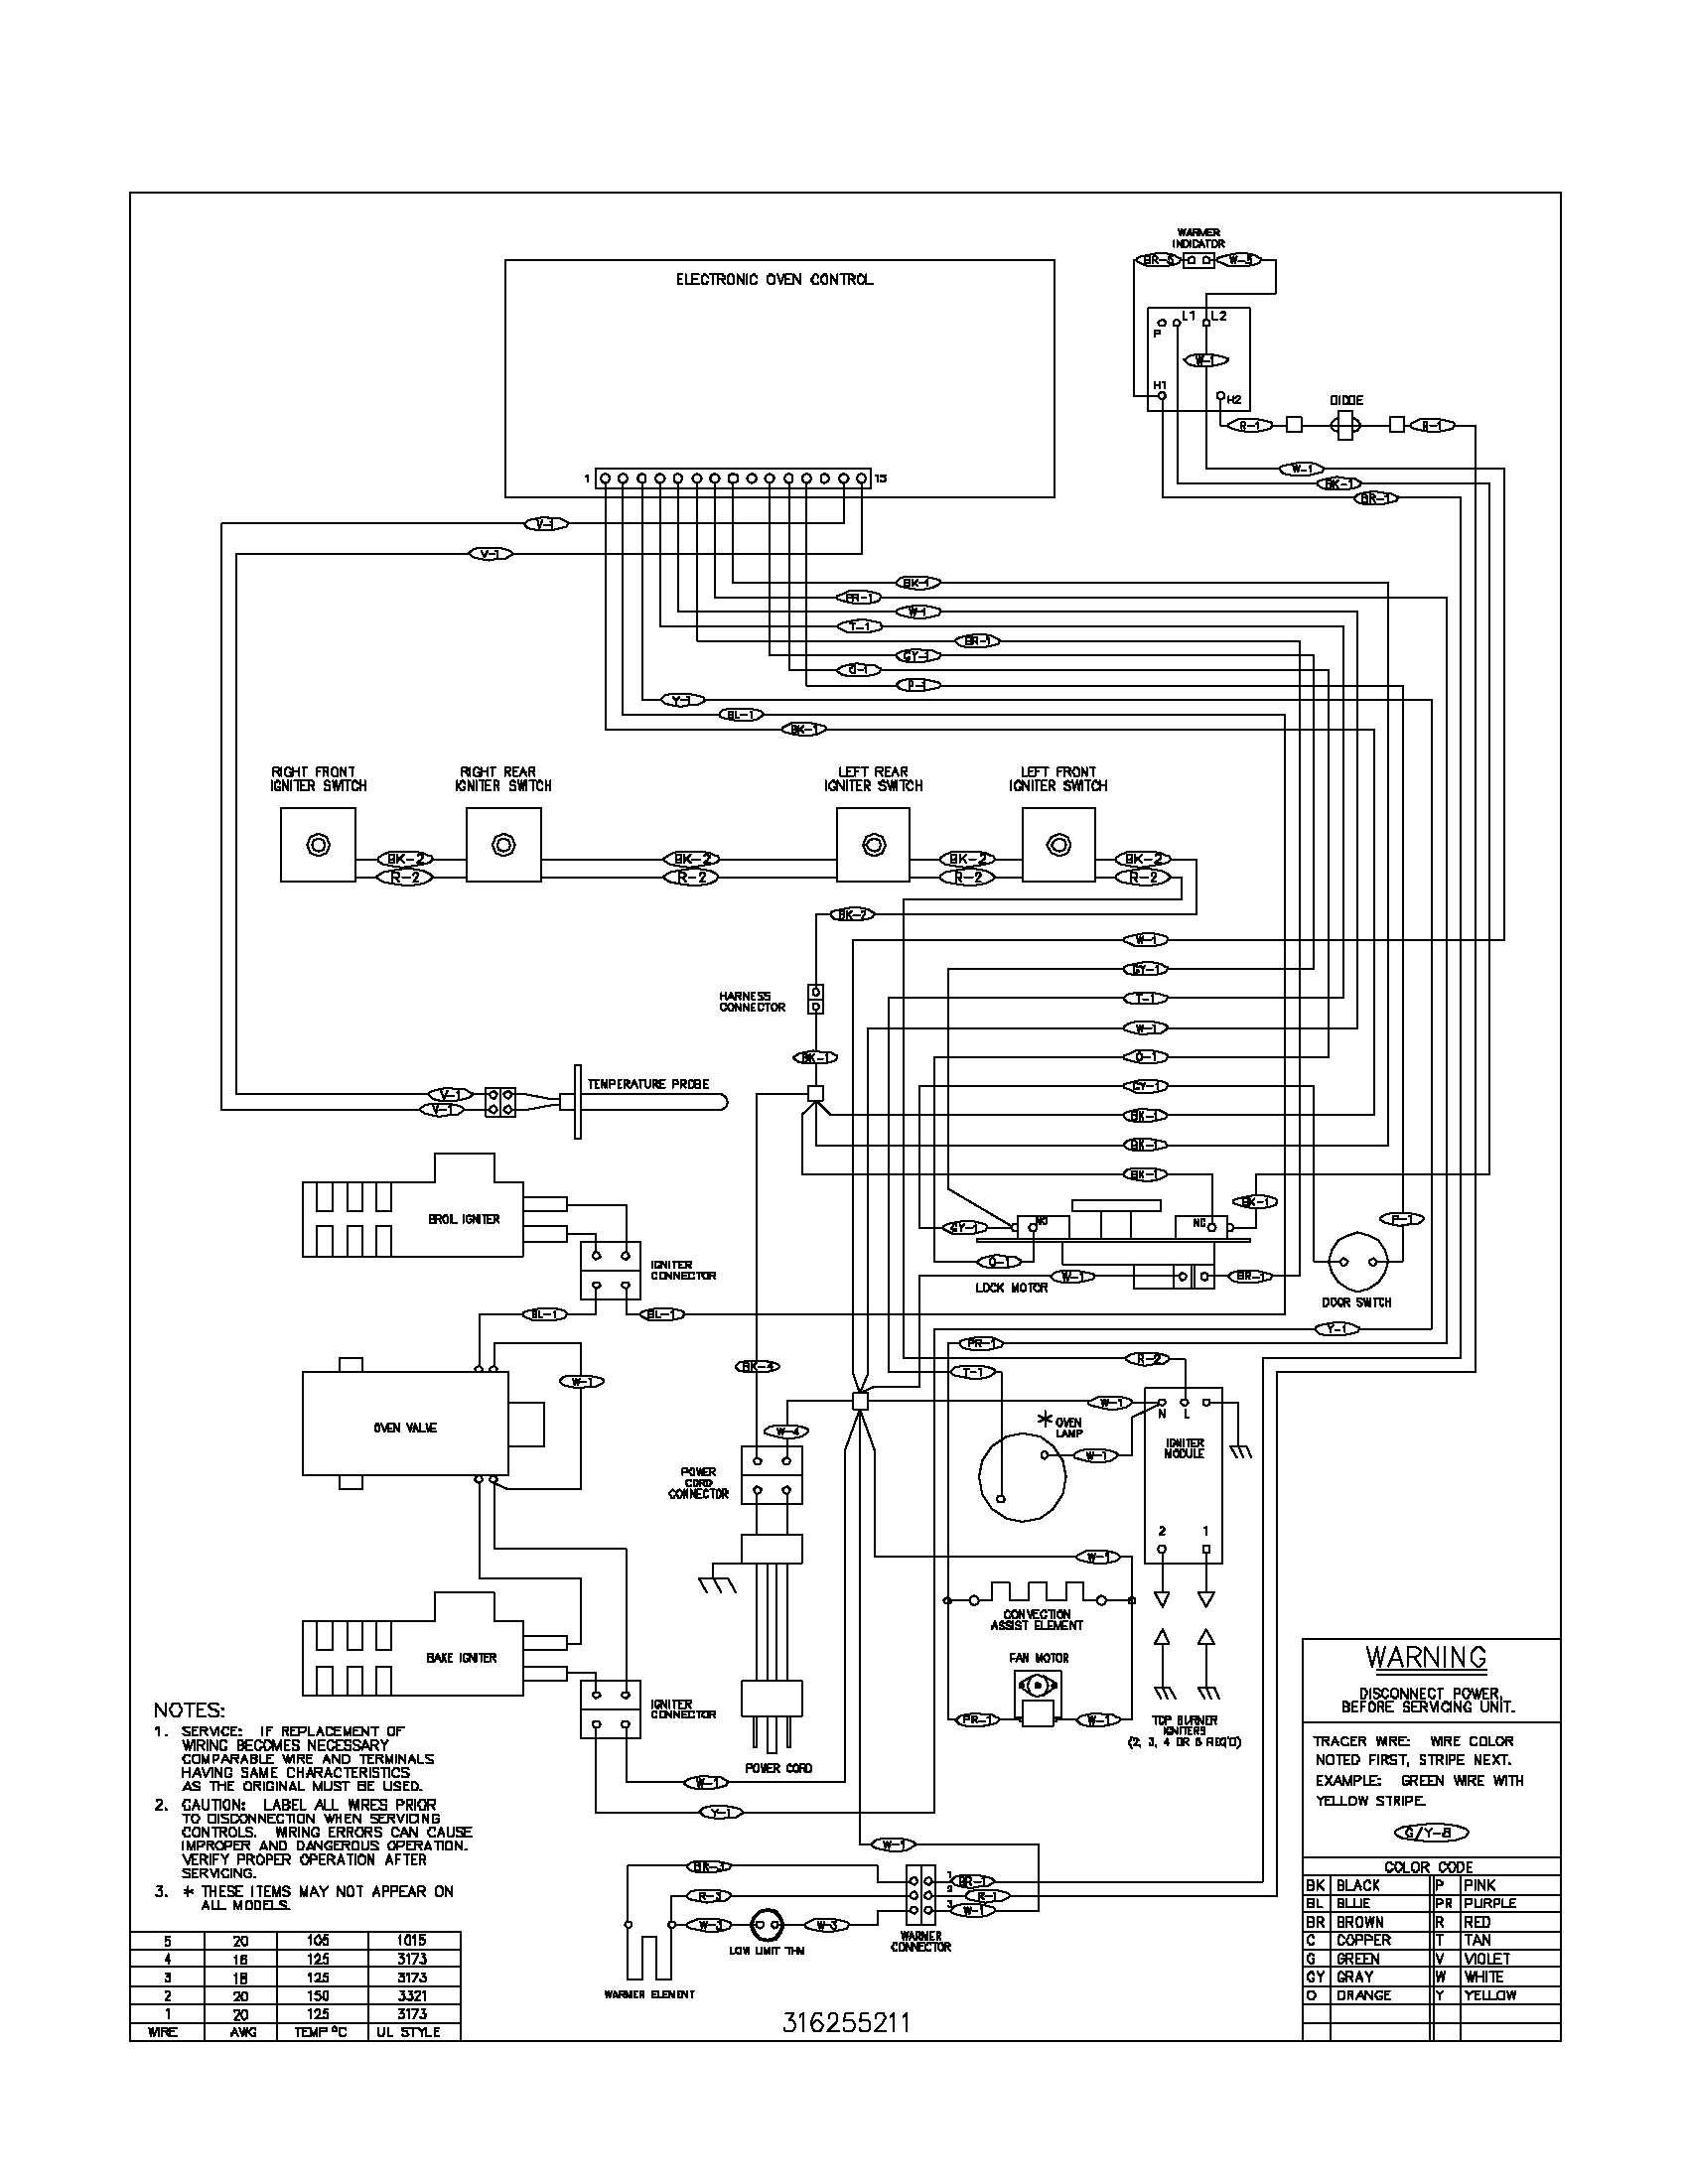 wiring diagram for kitchenaid refrigerator – the wiring diagram, Wiring diagram